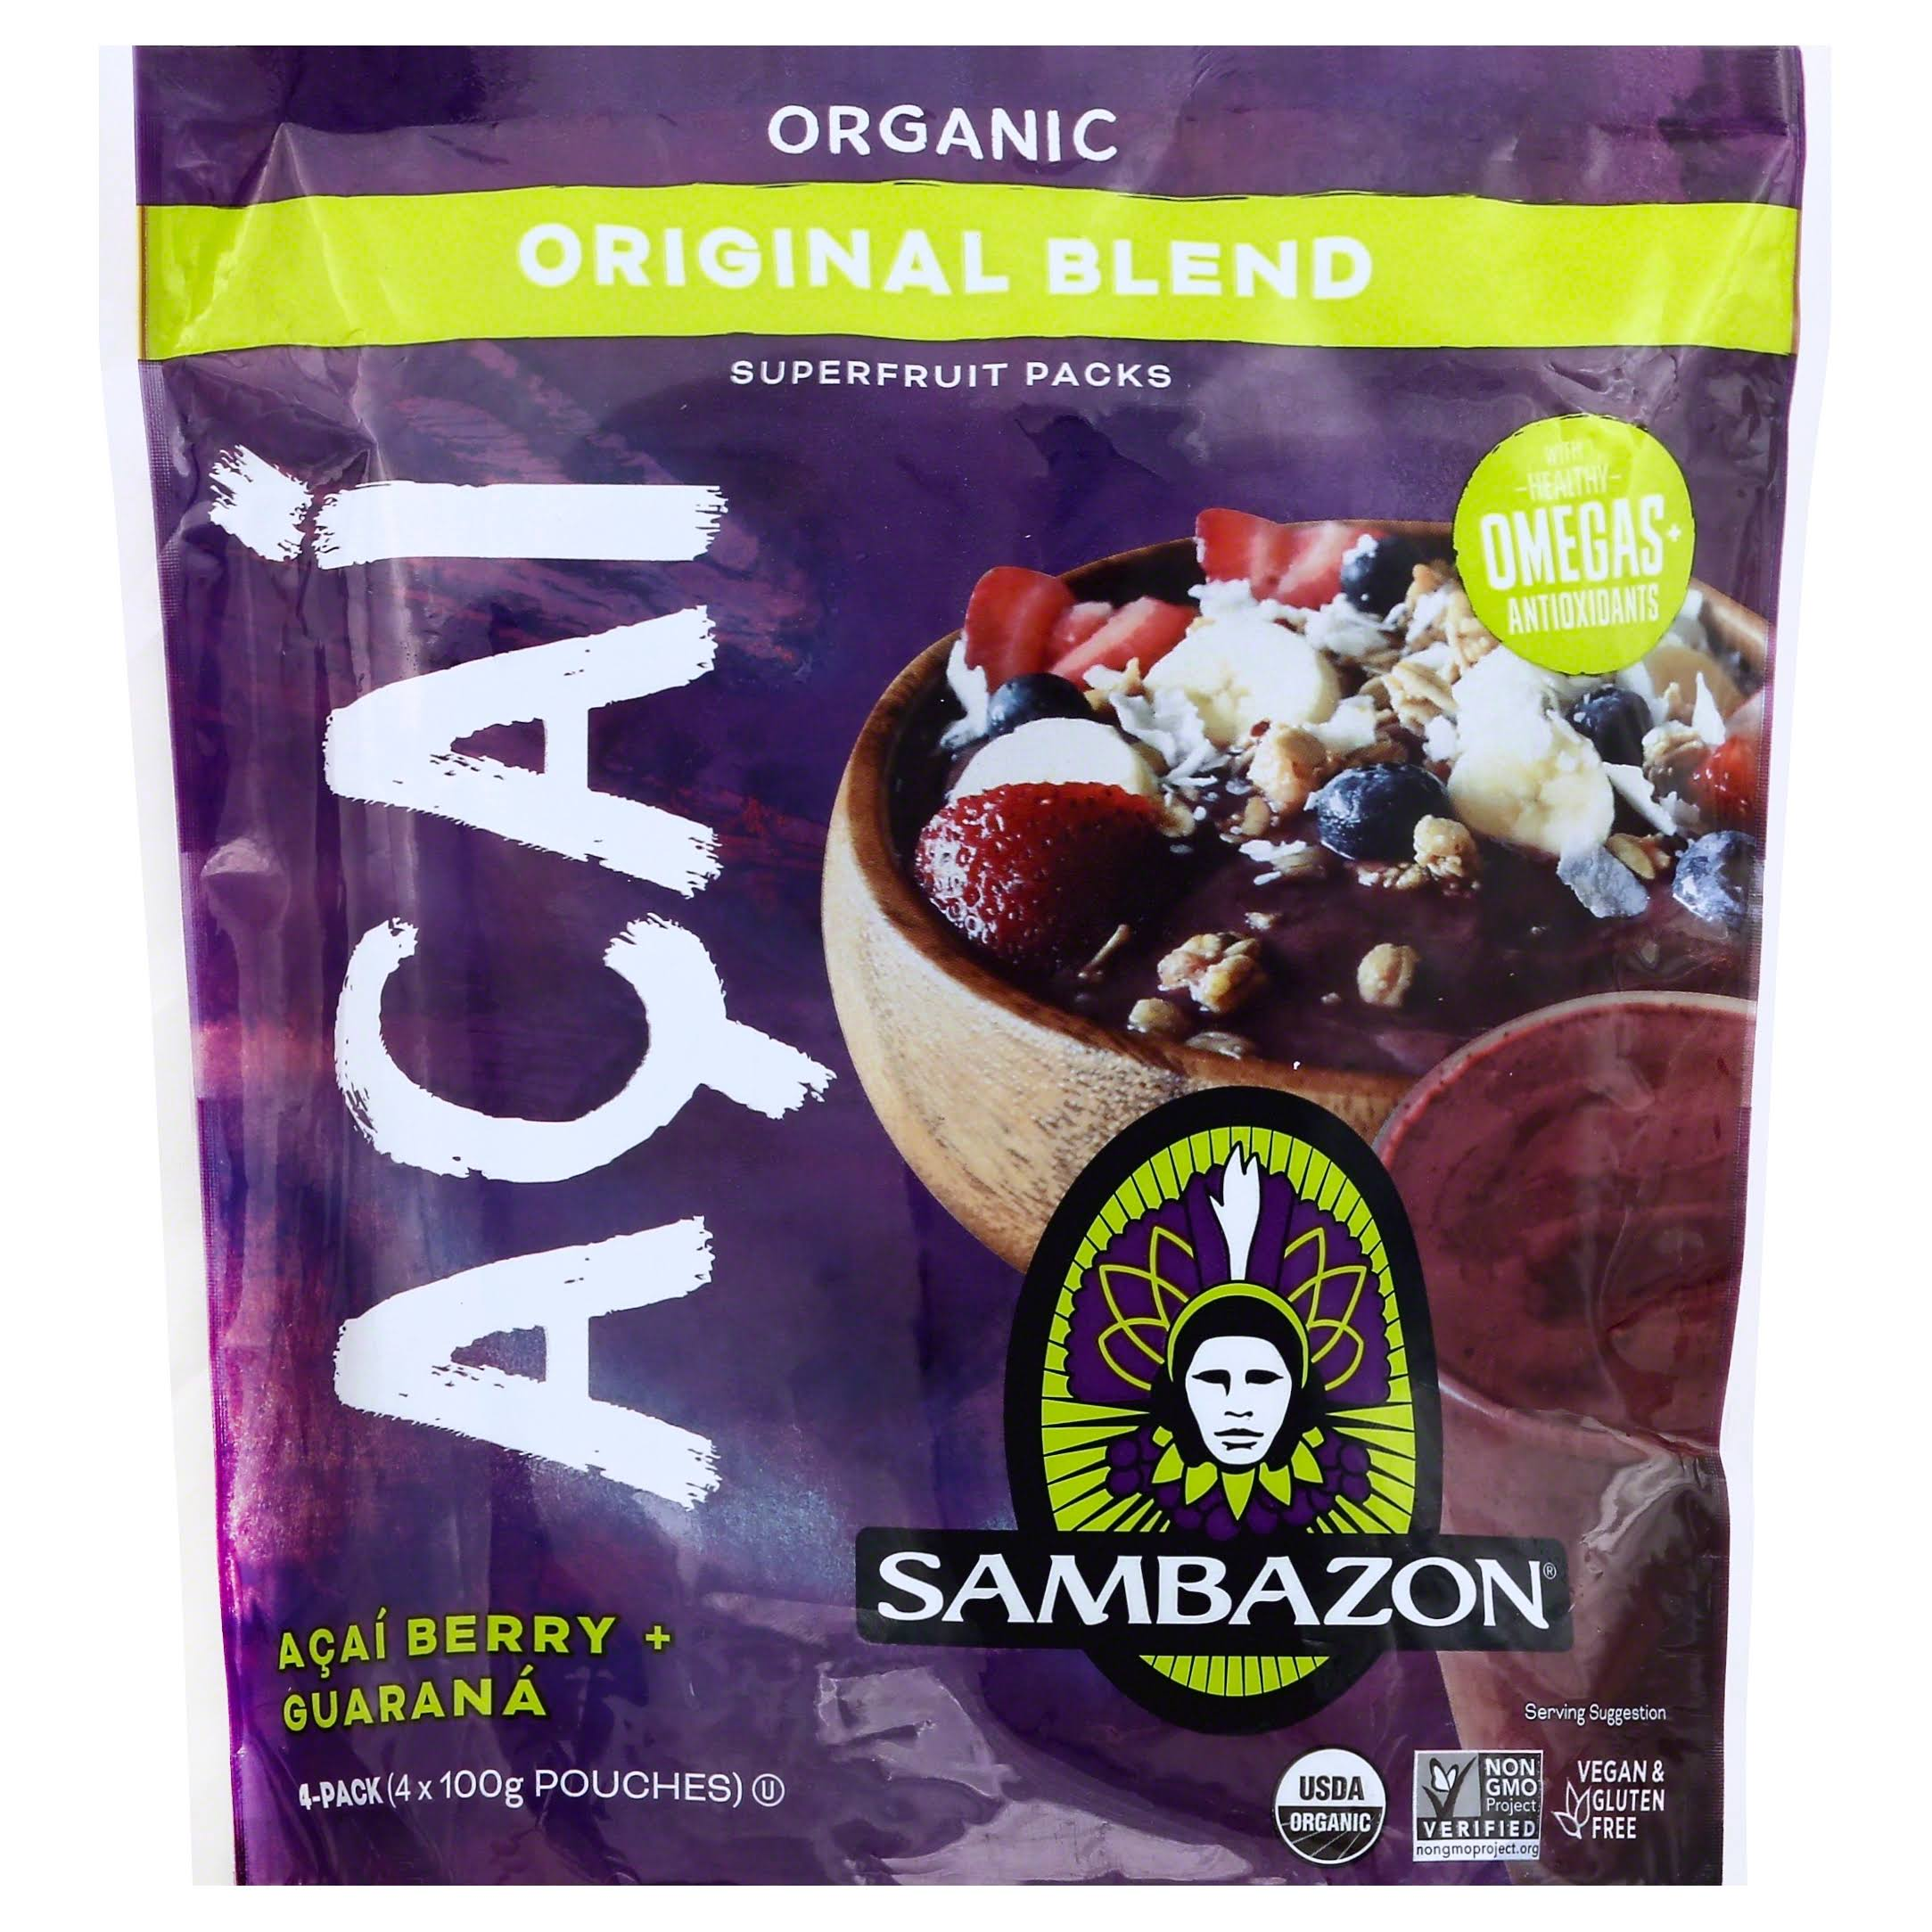 Sambazon Superfruit Packs, Organic, Original Blend, Acai, 4-Pack - 4 pack, 100 g pouches